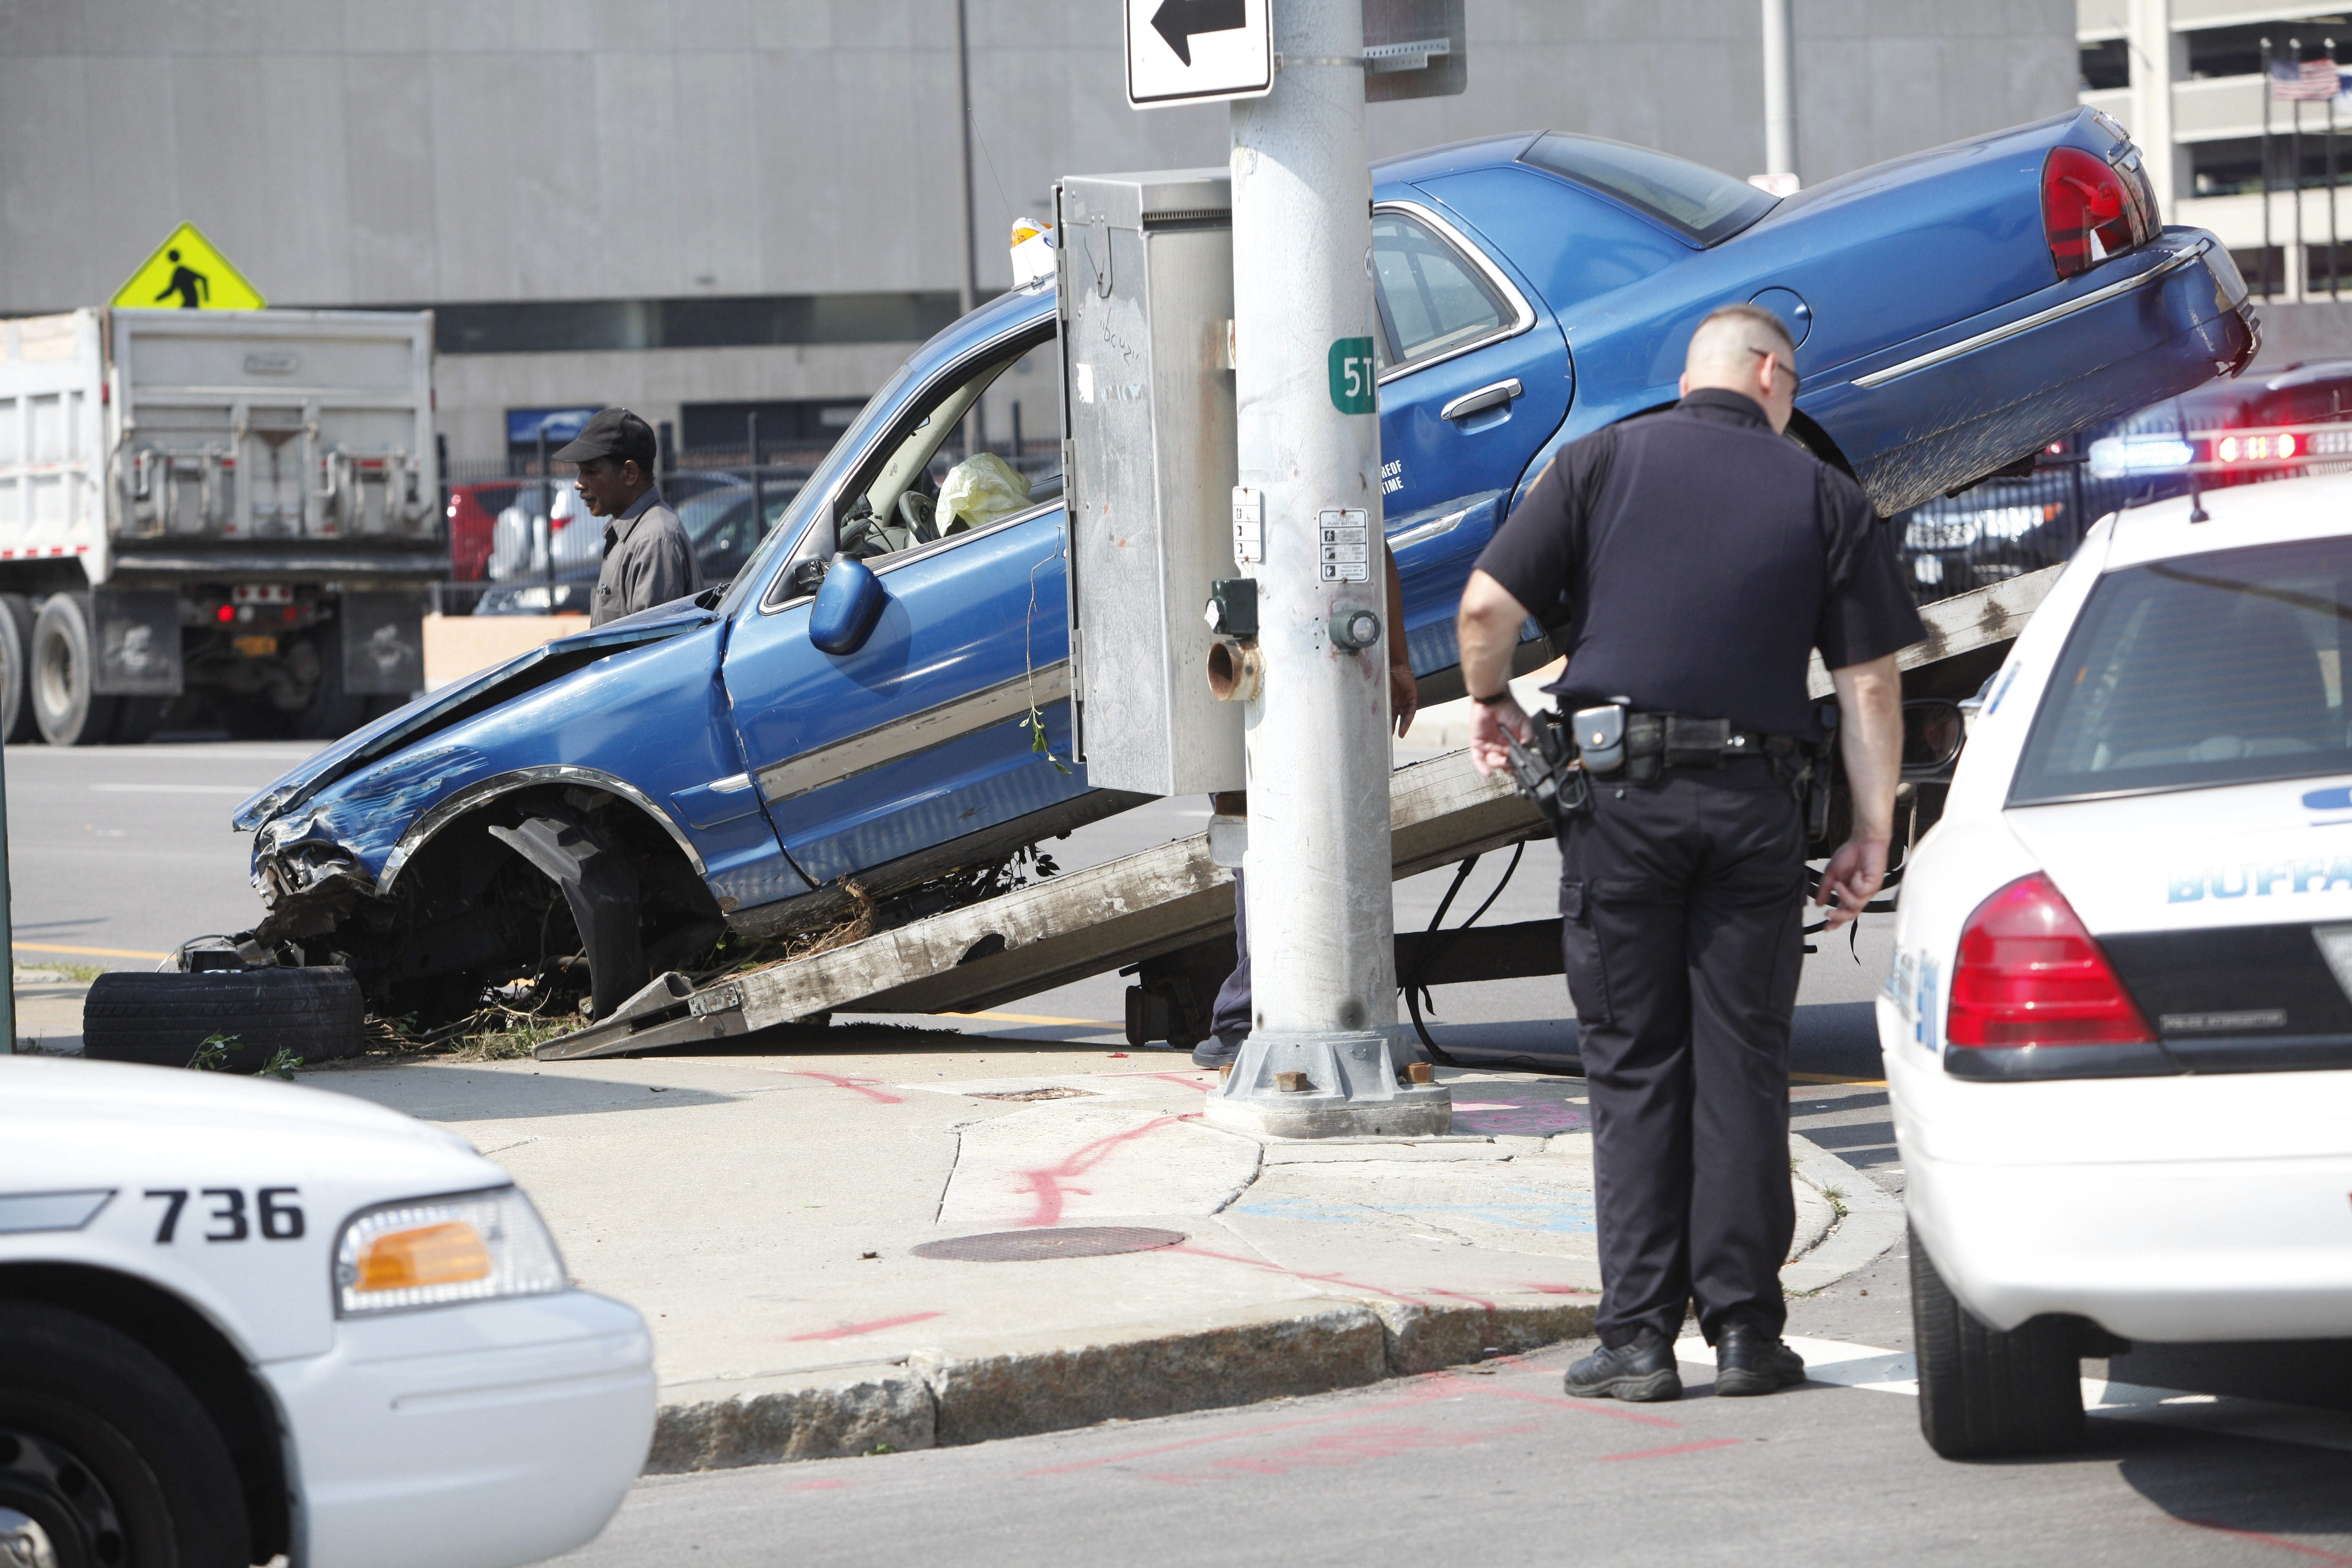 One of the vehicles involved in a crash at the intersection of Clinton and Oak streets Friday is loaded onto a flatbed truck. Six people were injured when a taxi hit another car then crashed into the Heritage Centers building on the corner.